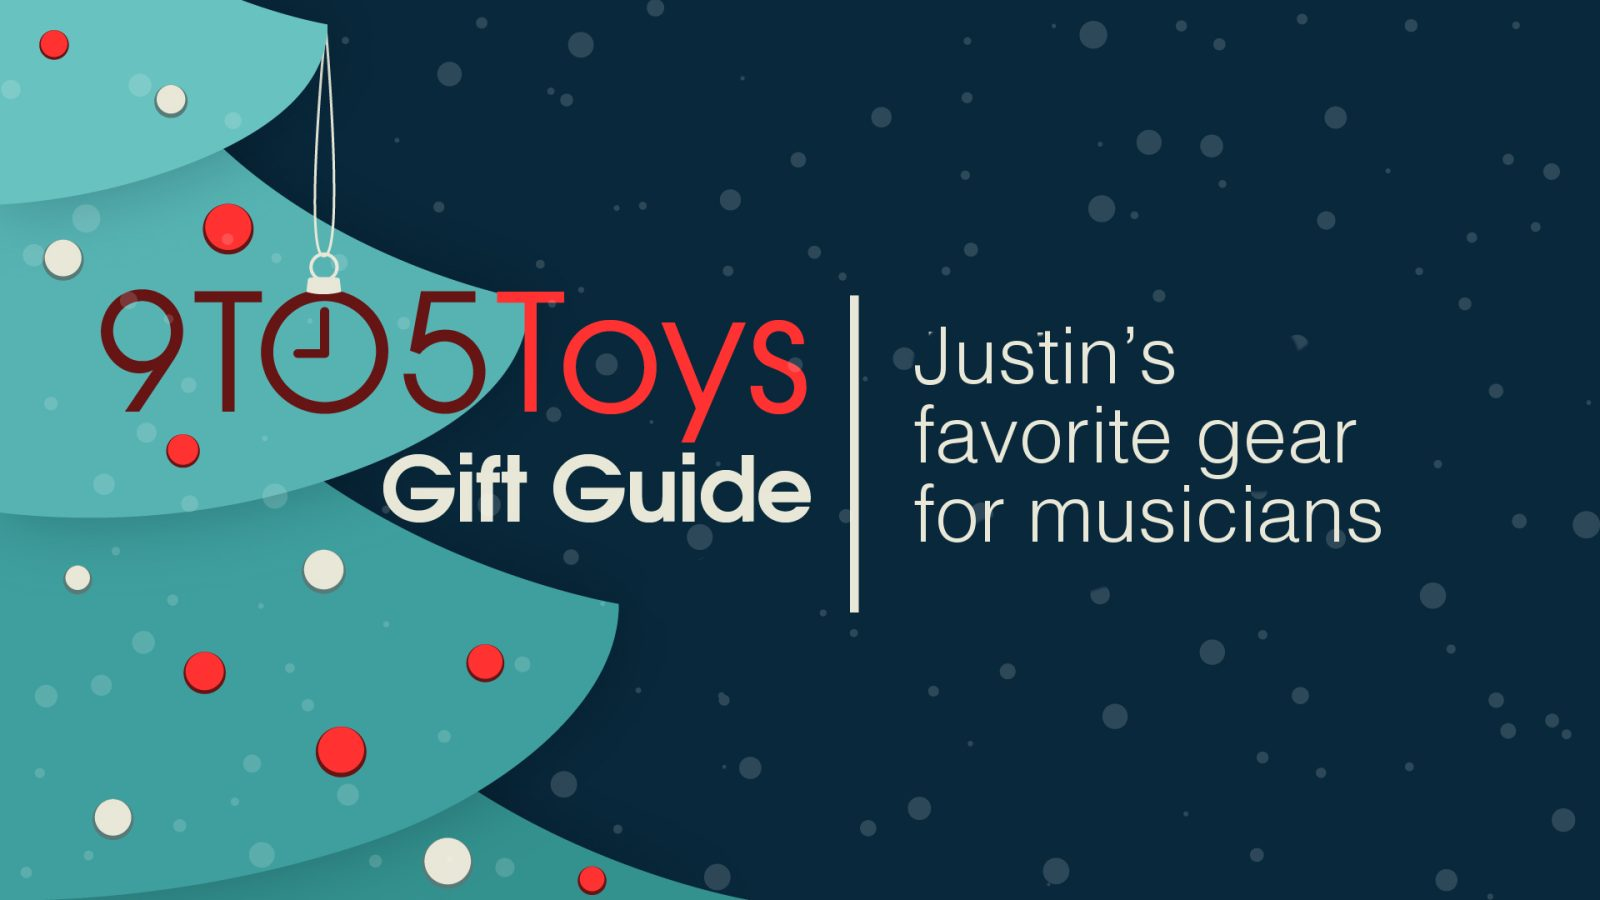 9to5Toys Gift Guide: Justin's favorite gear for musicians